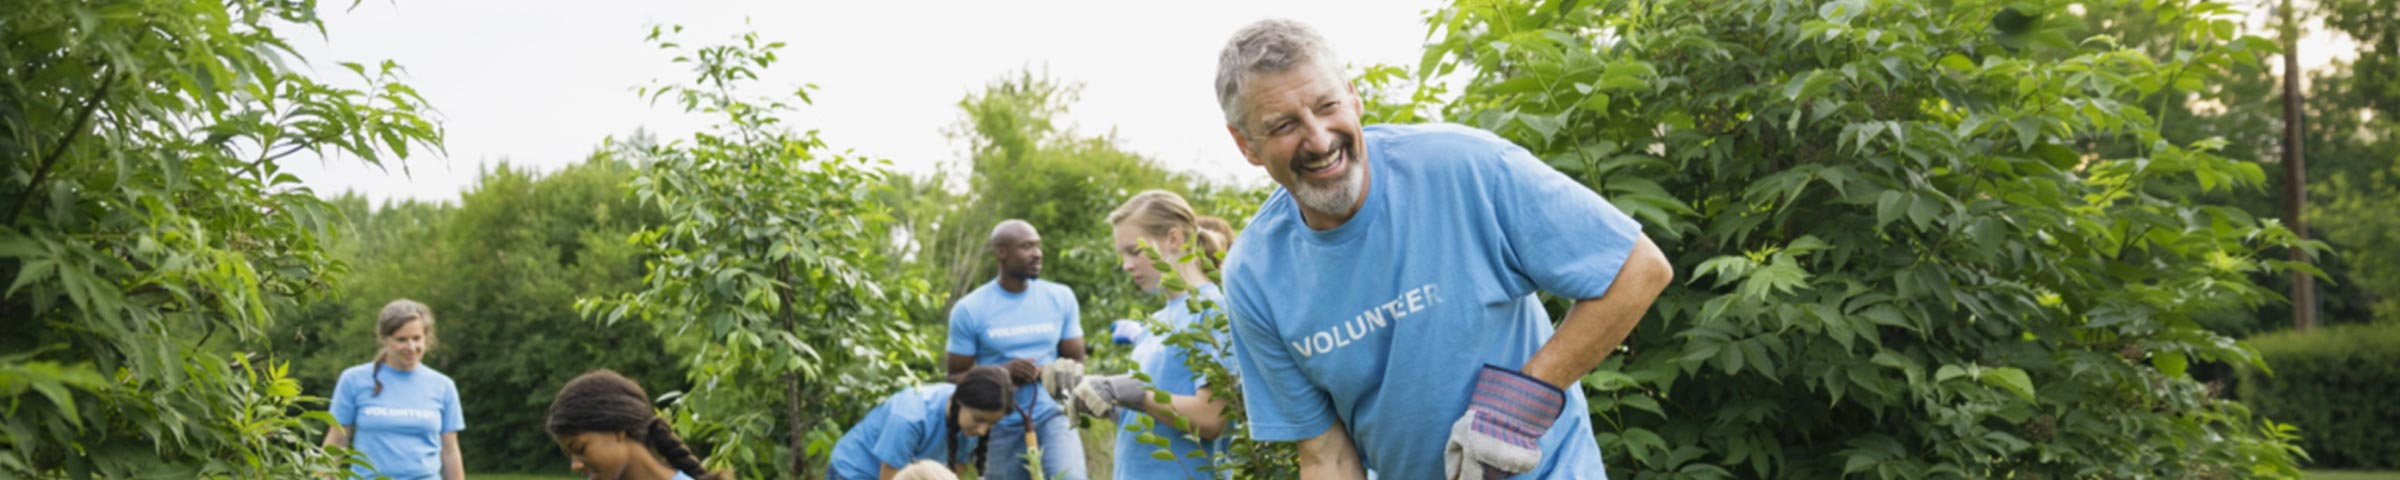 Male volunteer working at a gardening project